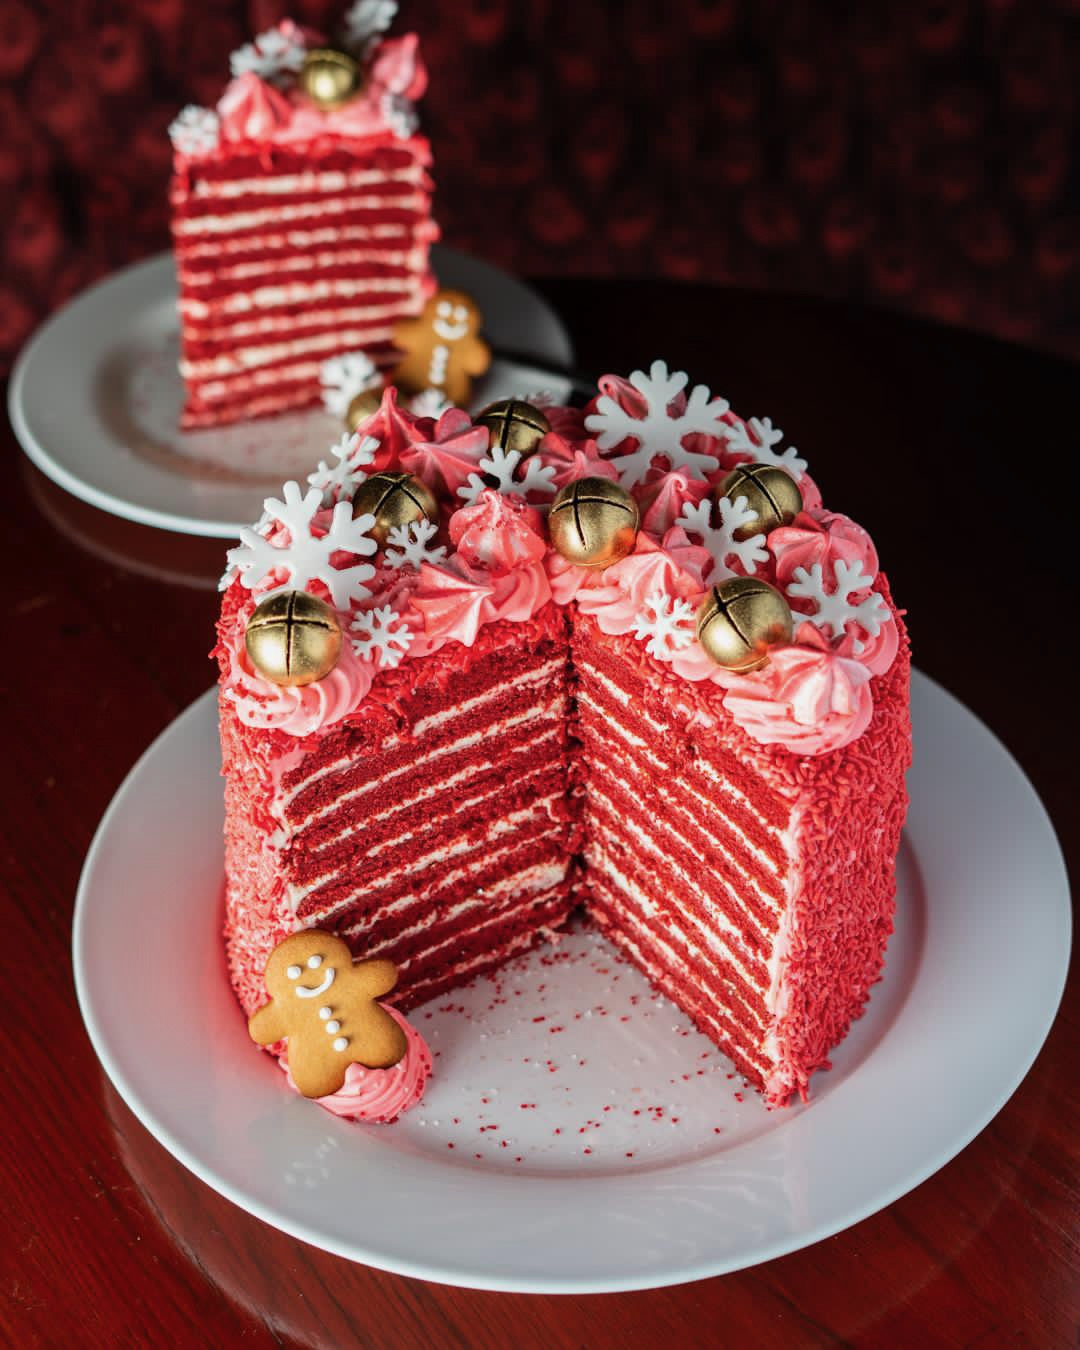 A 20-layer red velvet cake with snowflakes and bells on top